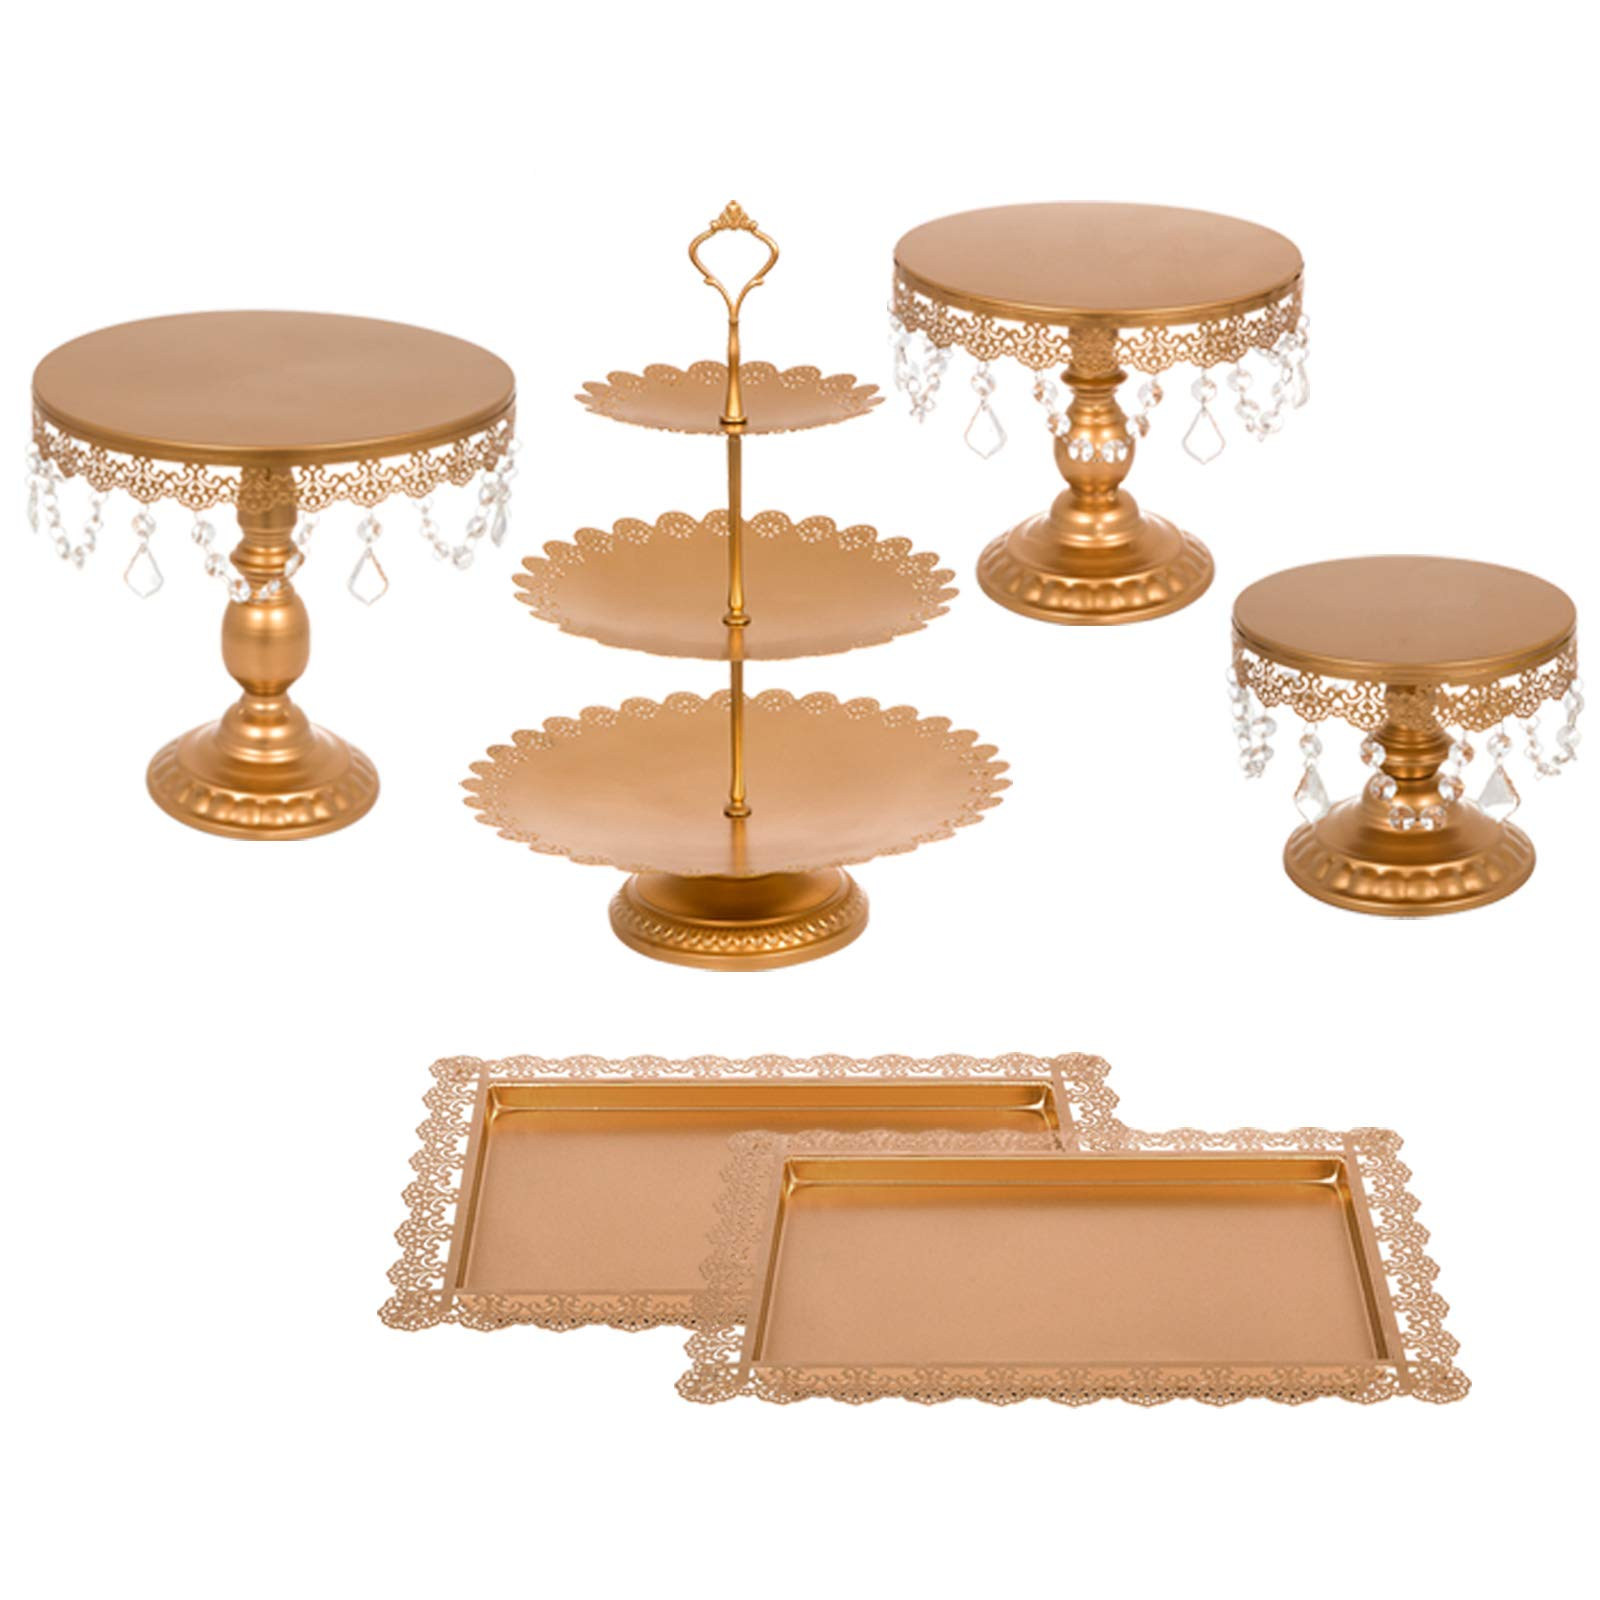 Happybuy 6 PCS Antique Metal Cake Stand Set with Crystal Pendants and Beads 3-Layer Tower Cake Plate Rectangle Cake Pans Round Dessert Holder Cupcake Stands for Party Wedding Birthday (6PCS, Gold) by Happybuy